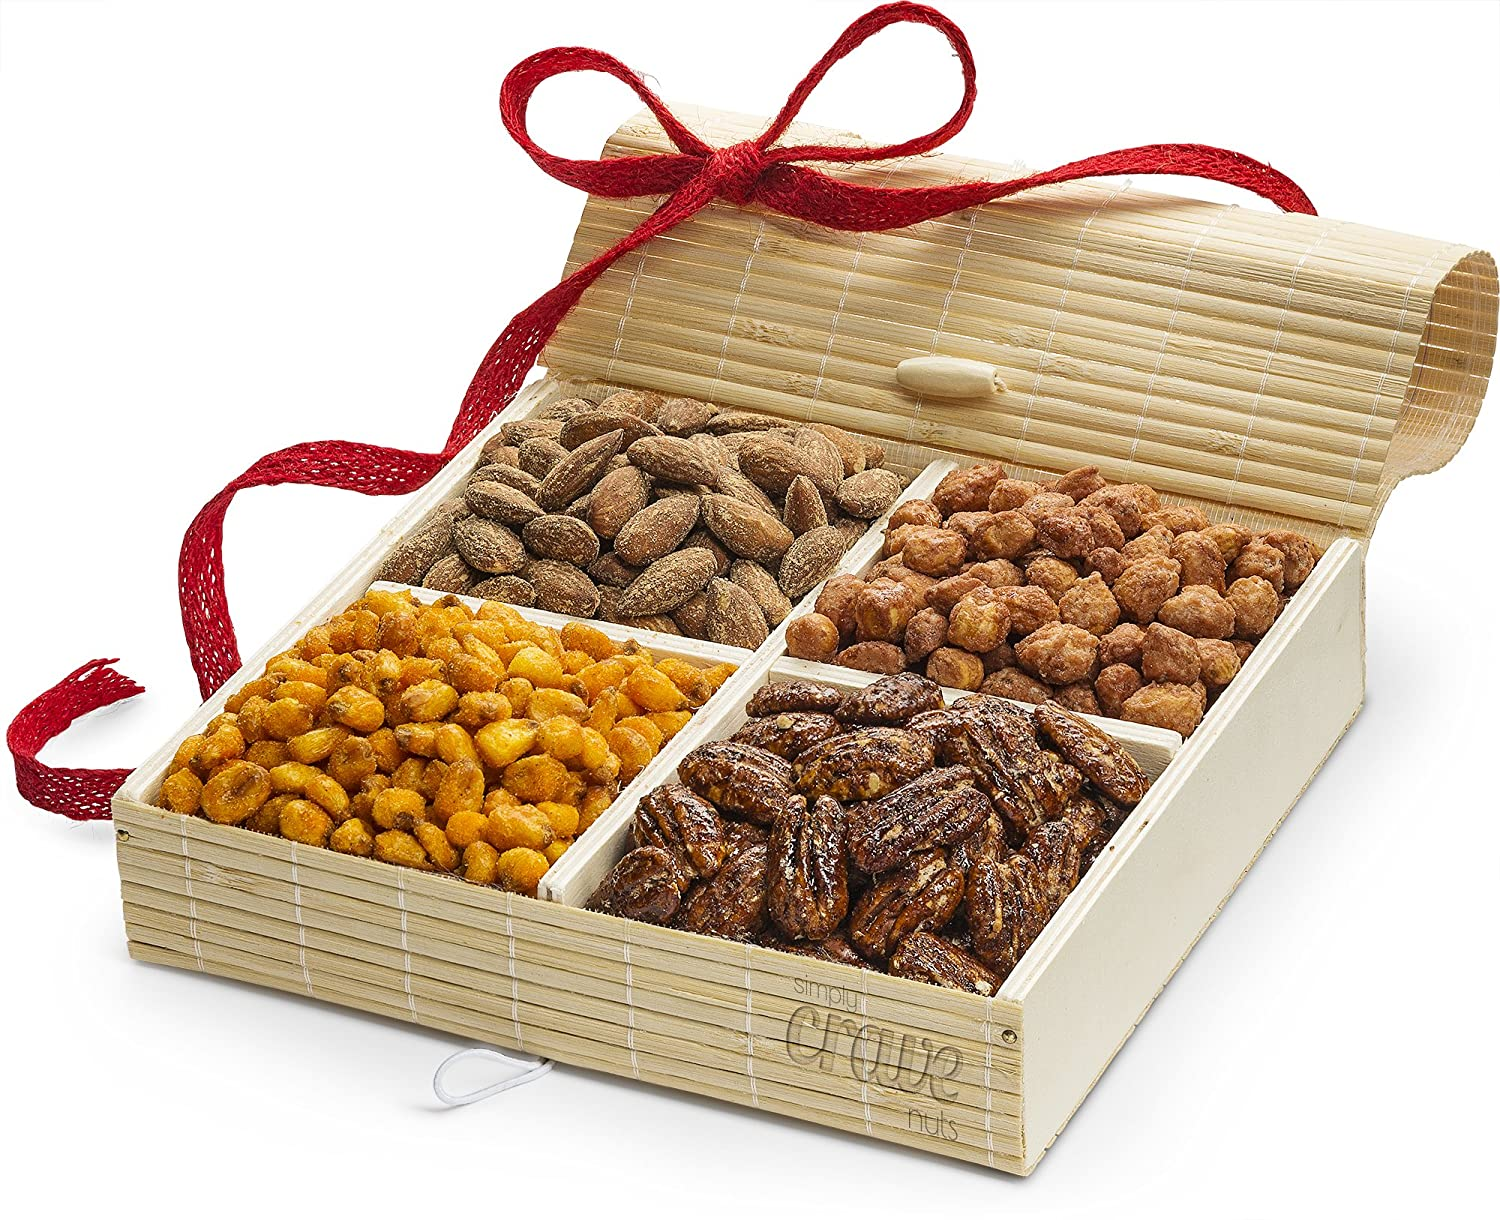 Christmas Baskets.Gourmet Nuts Gift Baskets Holiday Nut Gifts Christmas Baskets Or Thanksgiving Food Baskets 4